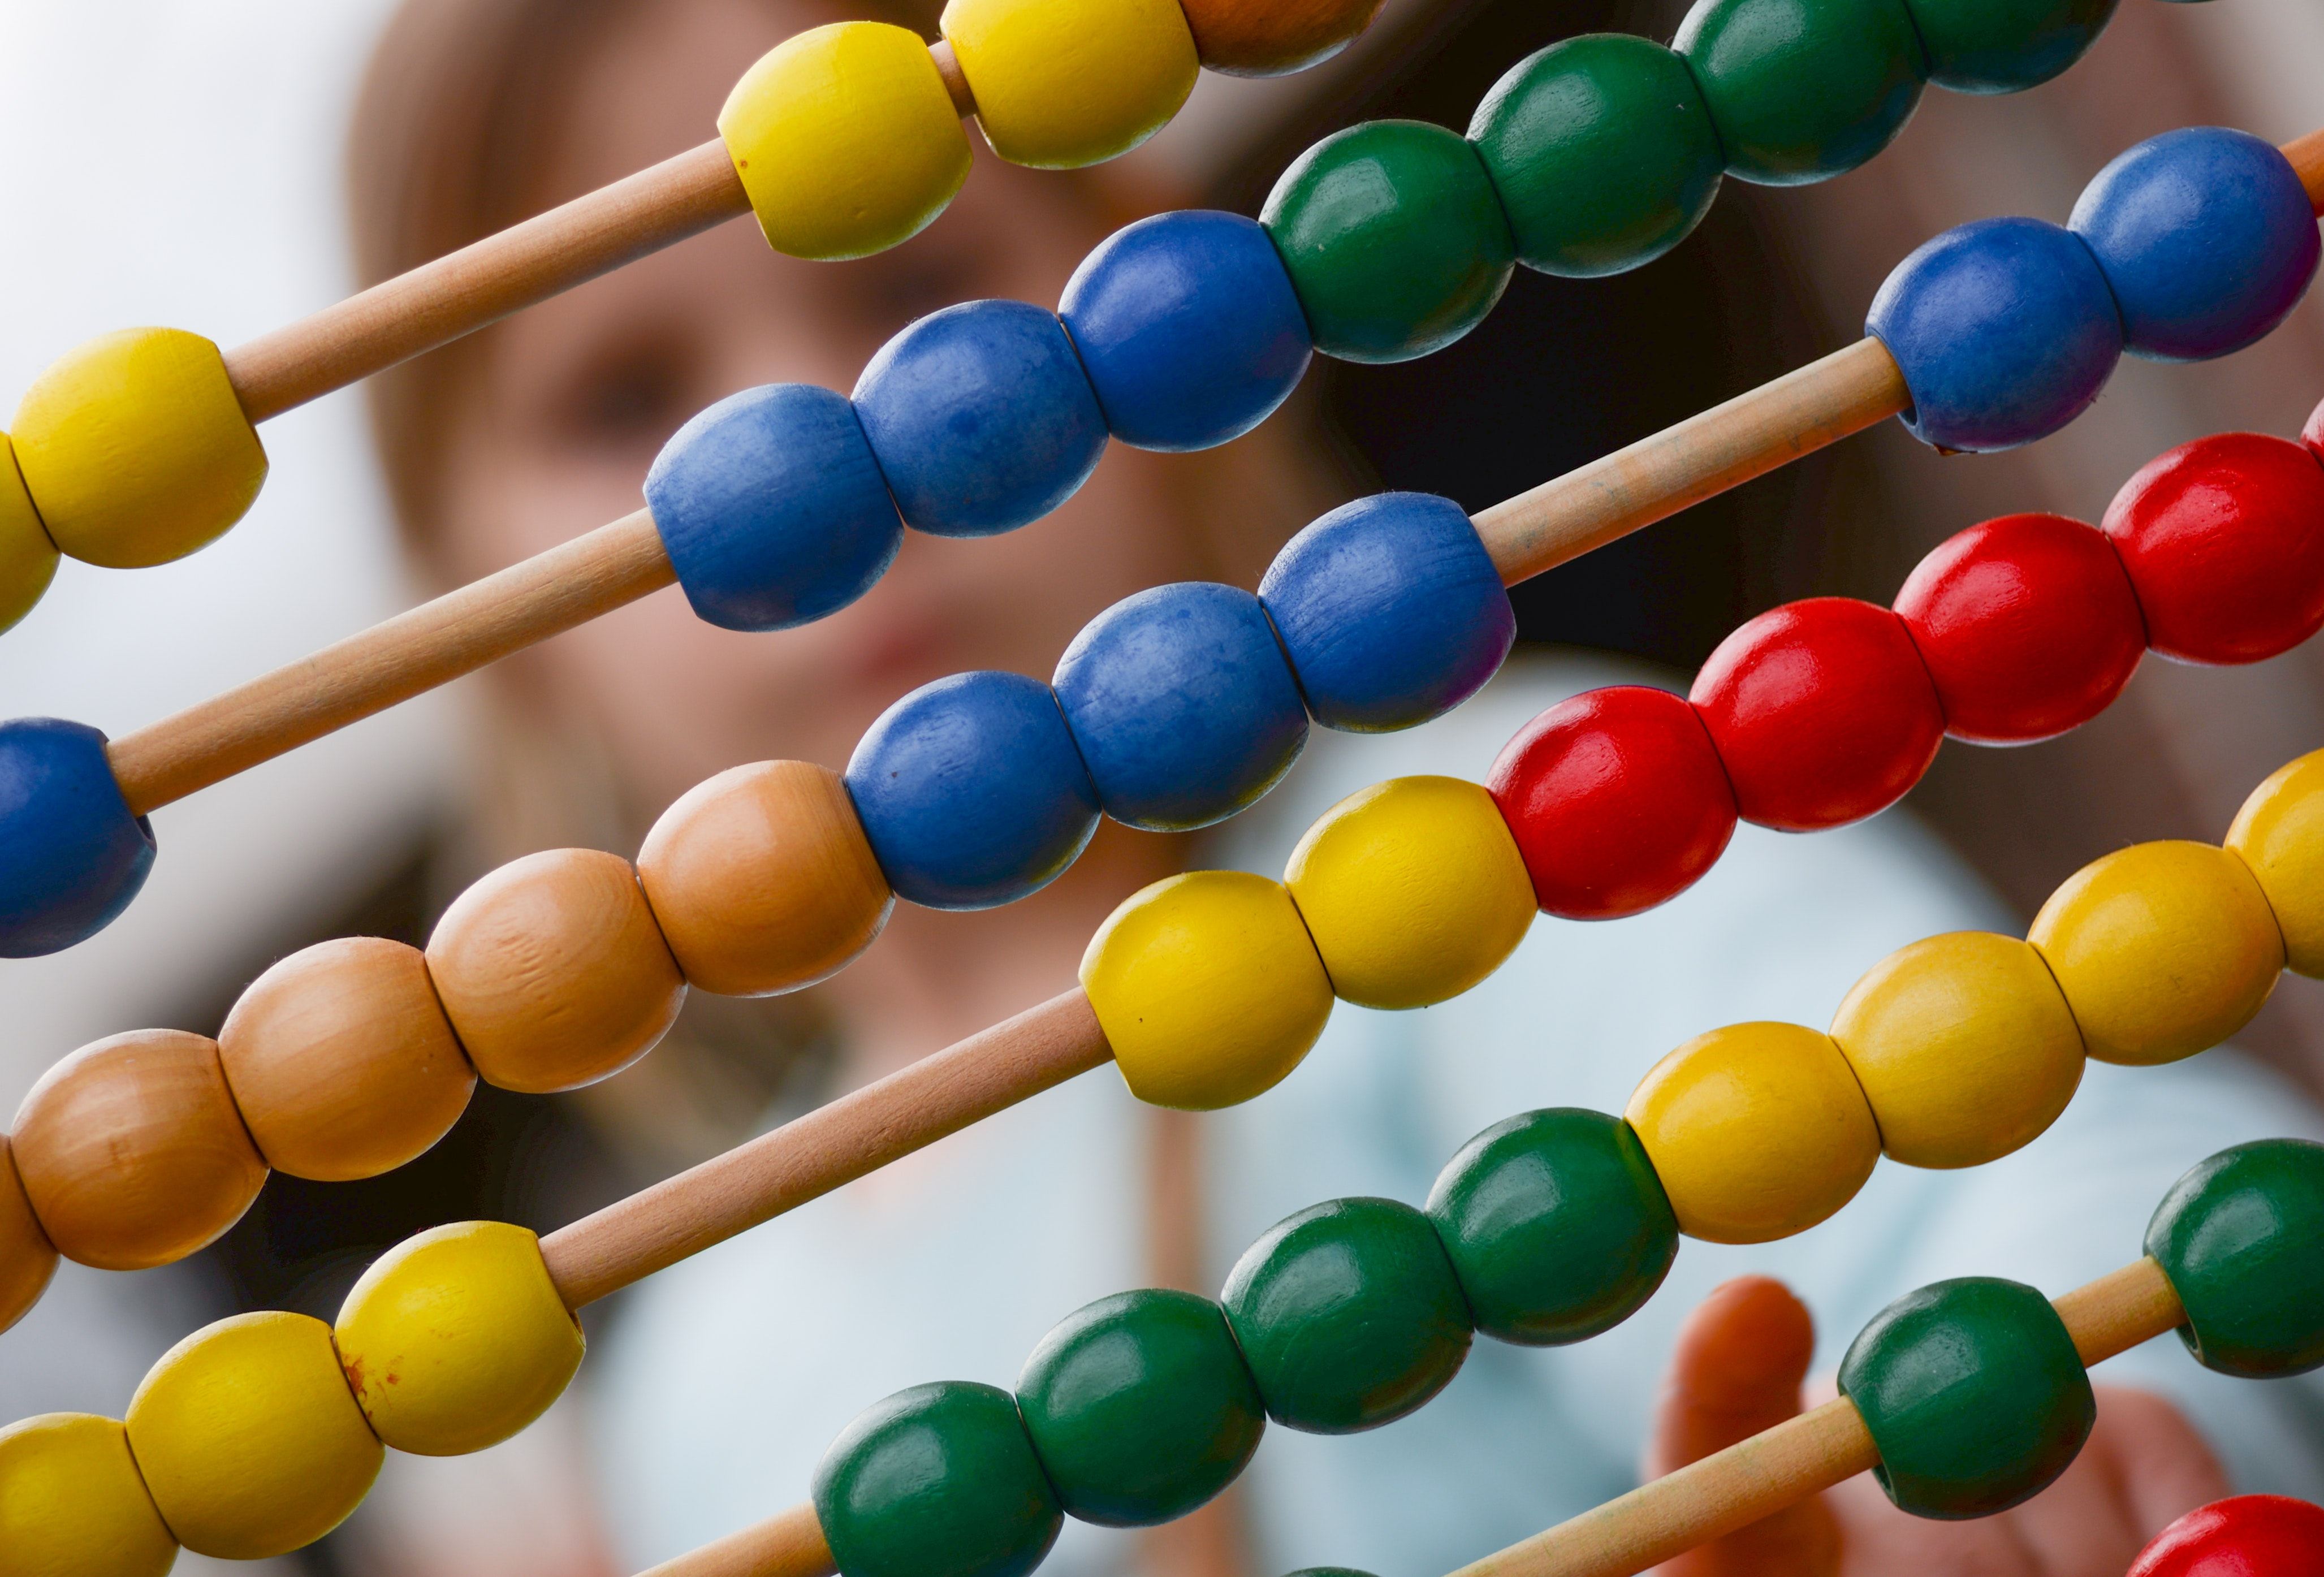 Variety of colourful beads on an abacus